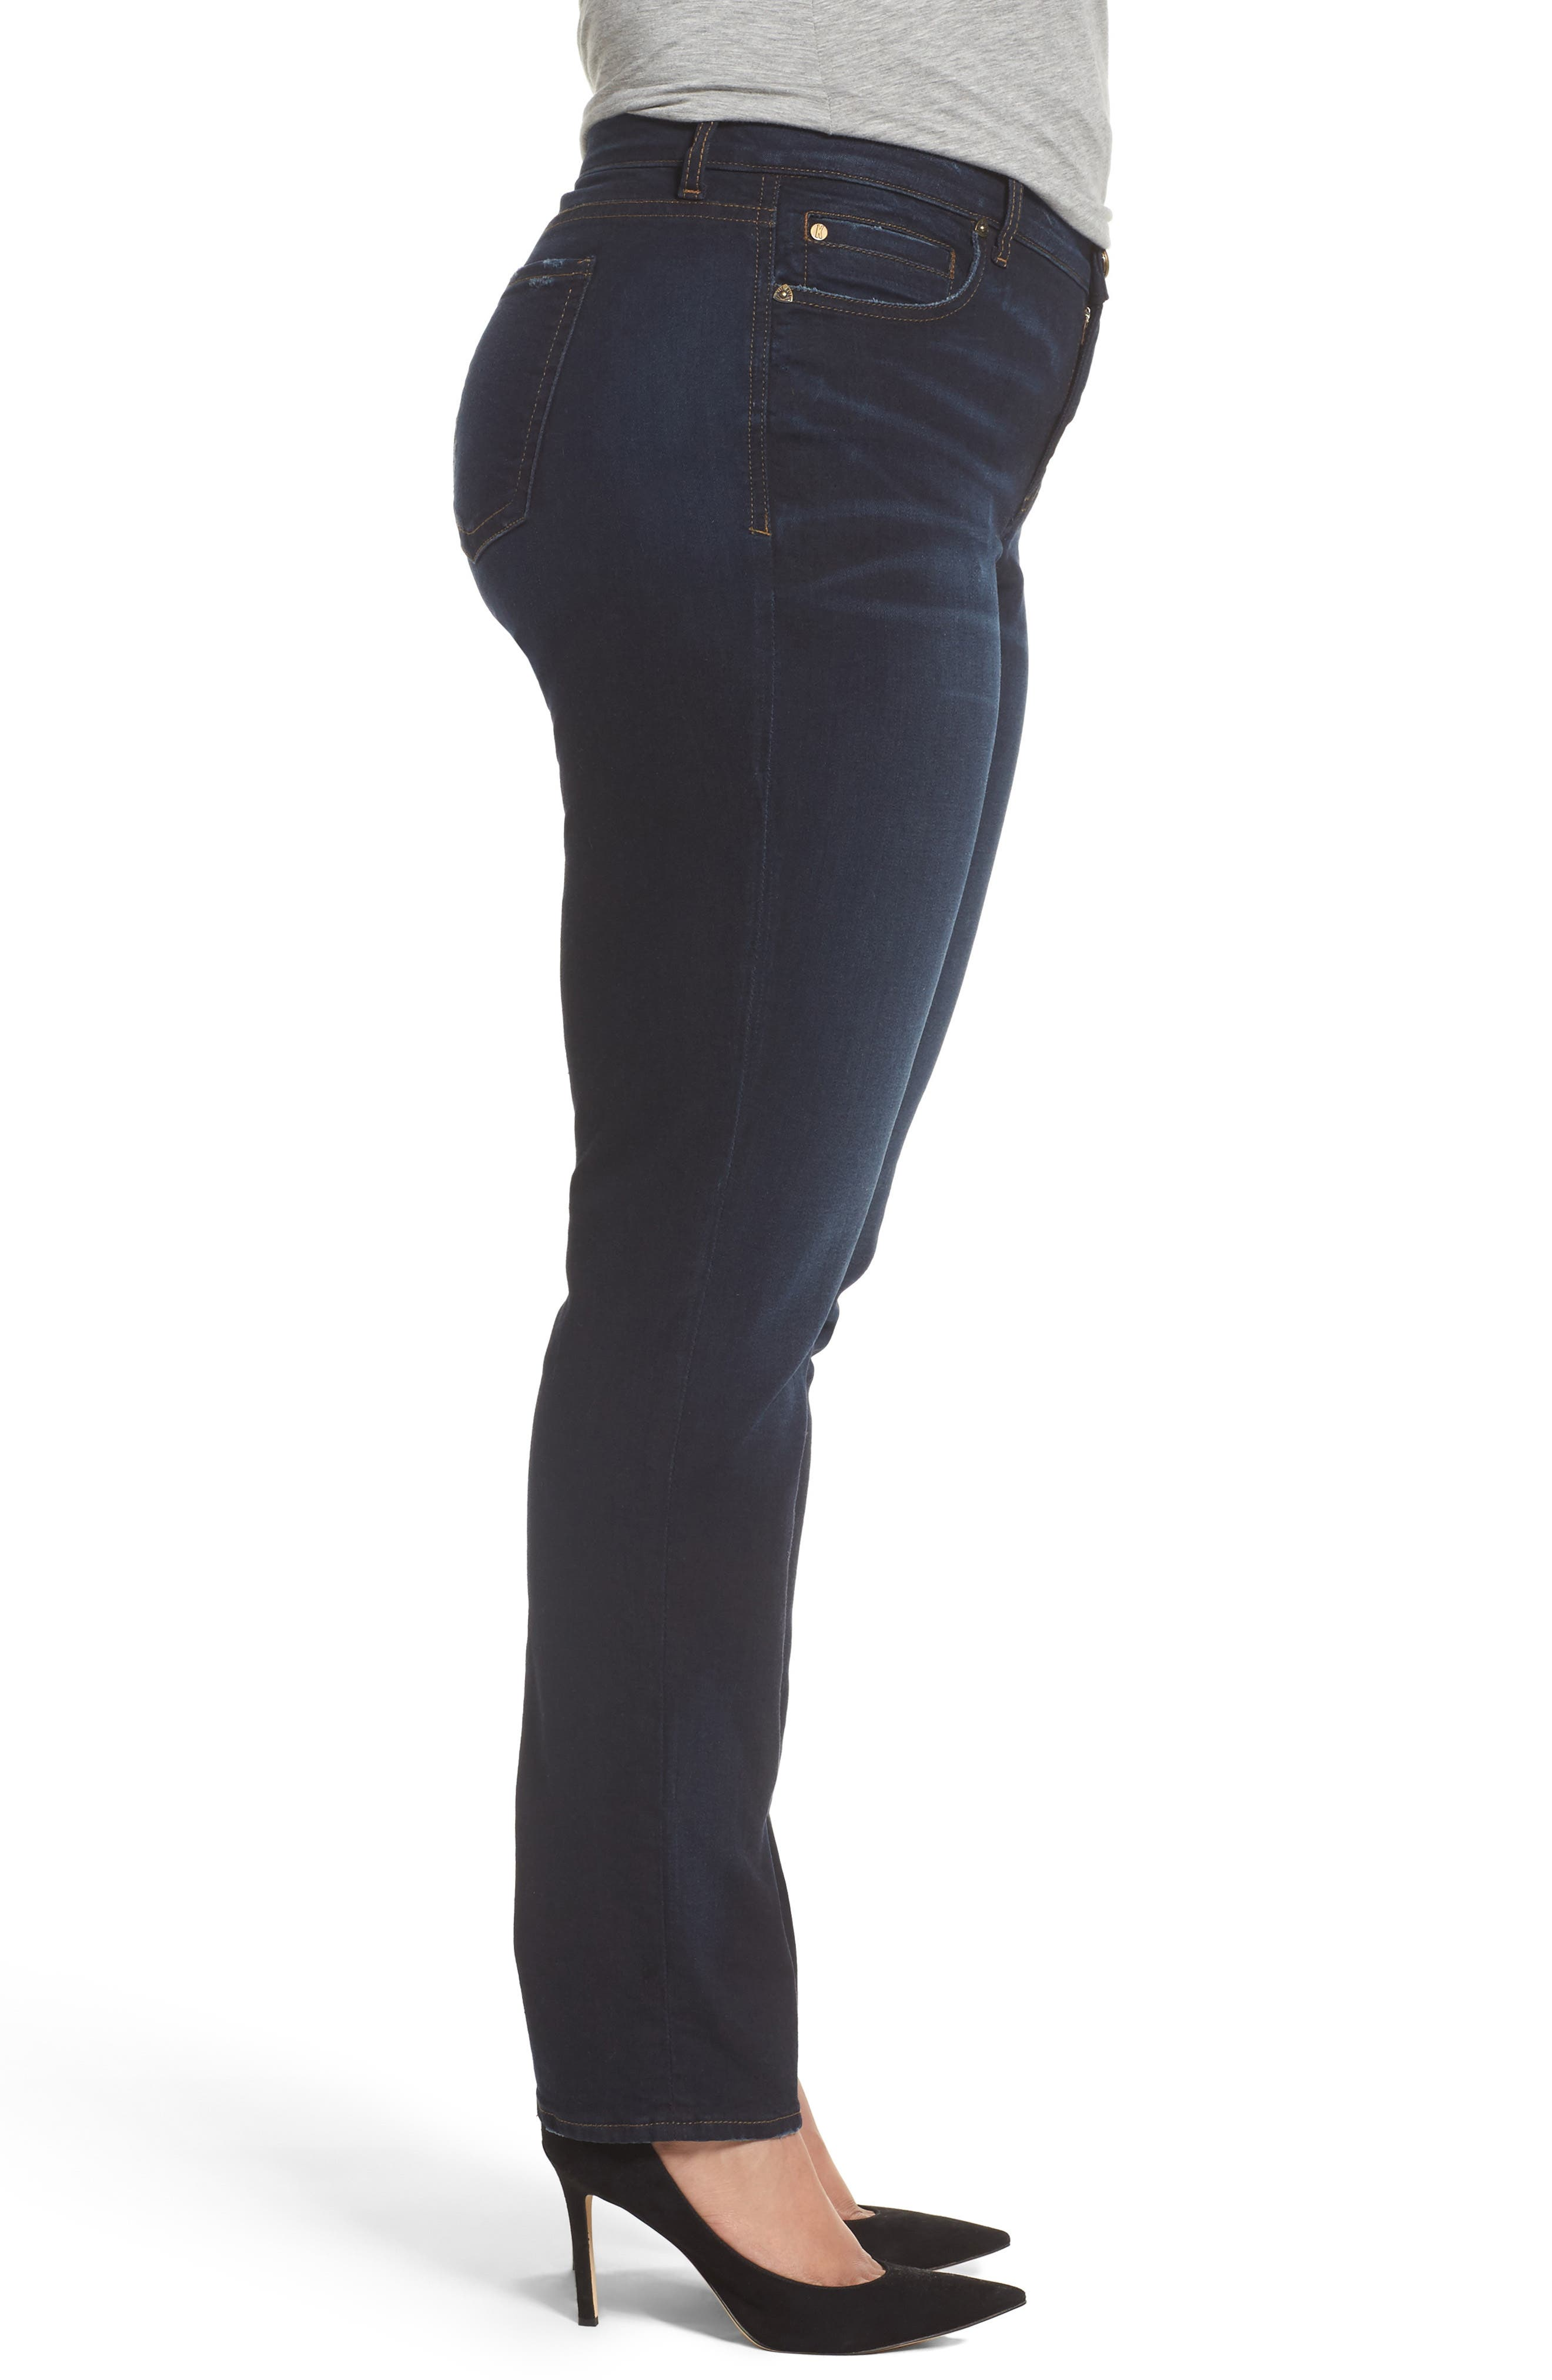 Diana Stretch Skinny Jeans,                             Alternate thumbnail 3, color,                             400